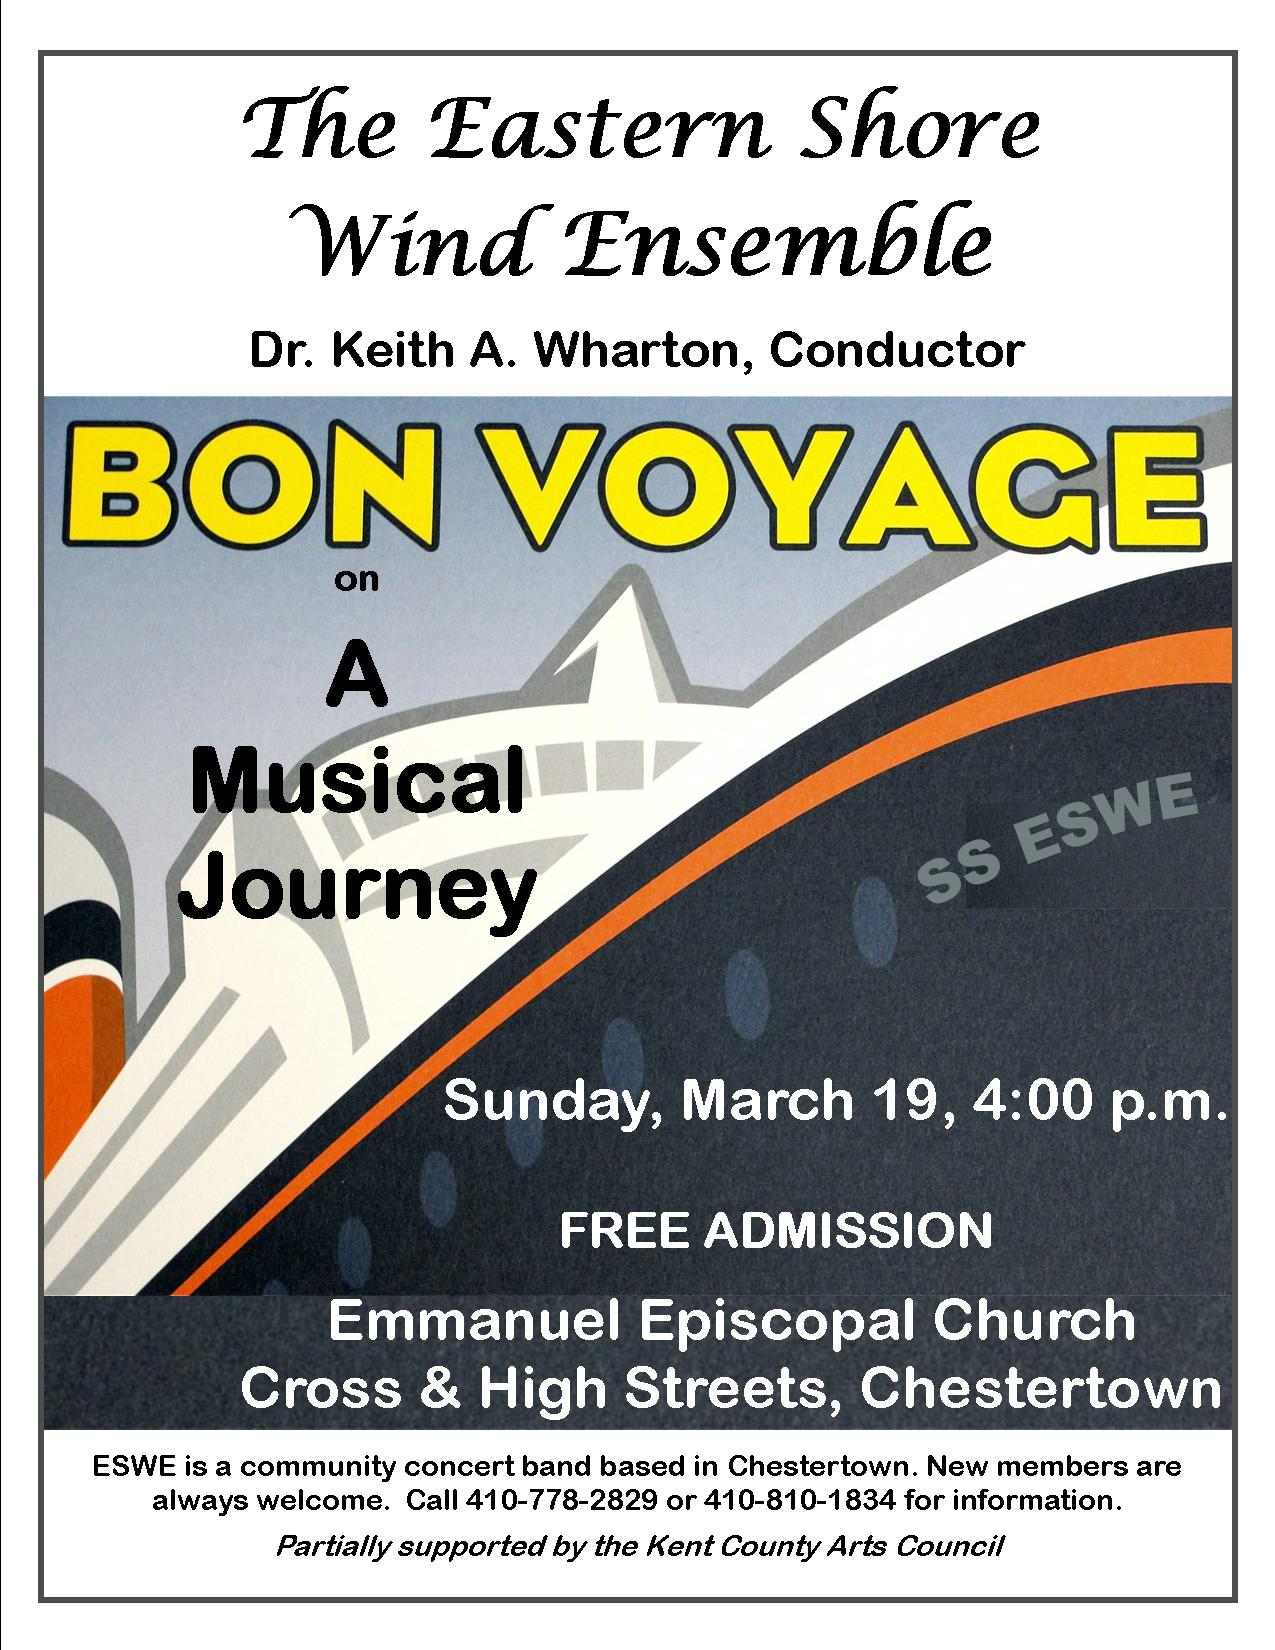 A Musical Journey: Free Band Concert by the Eastern Shore Wind Ensemble